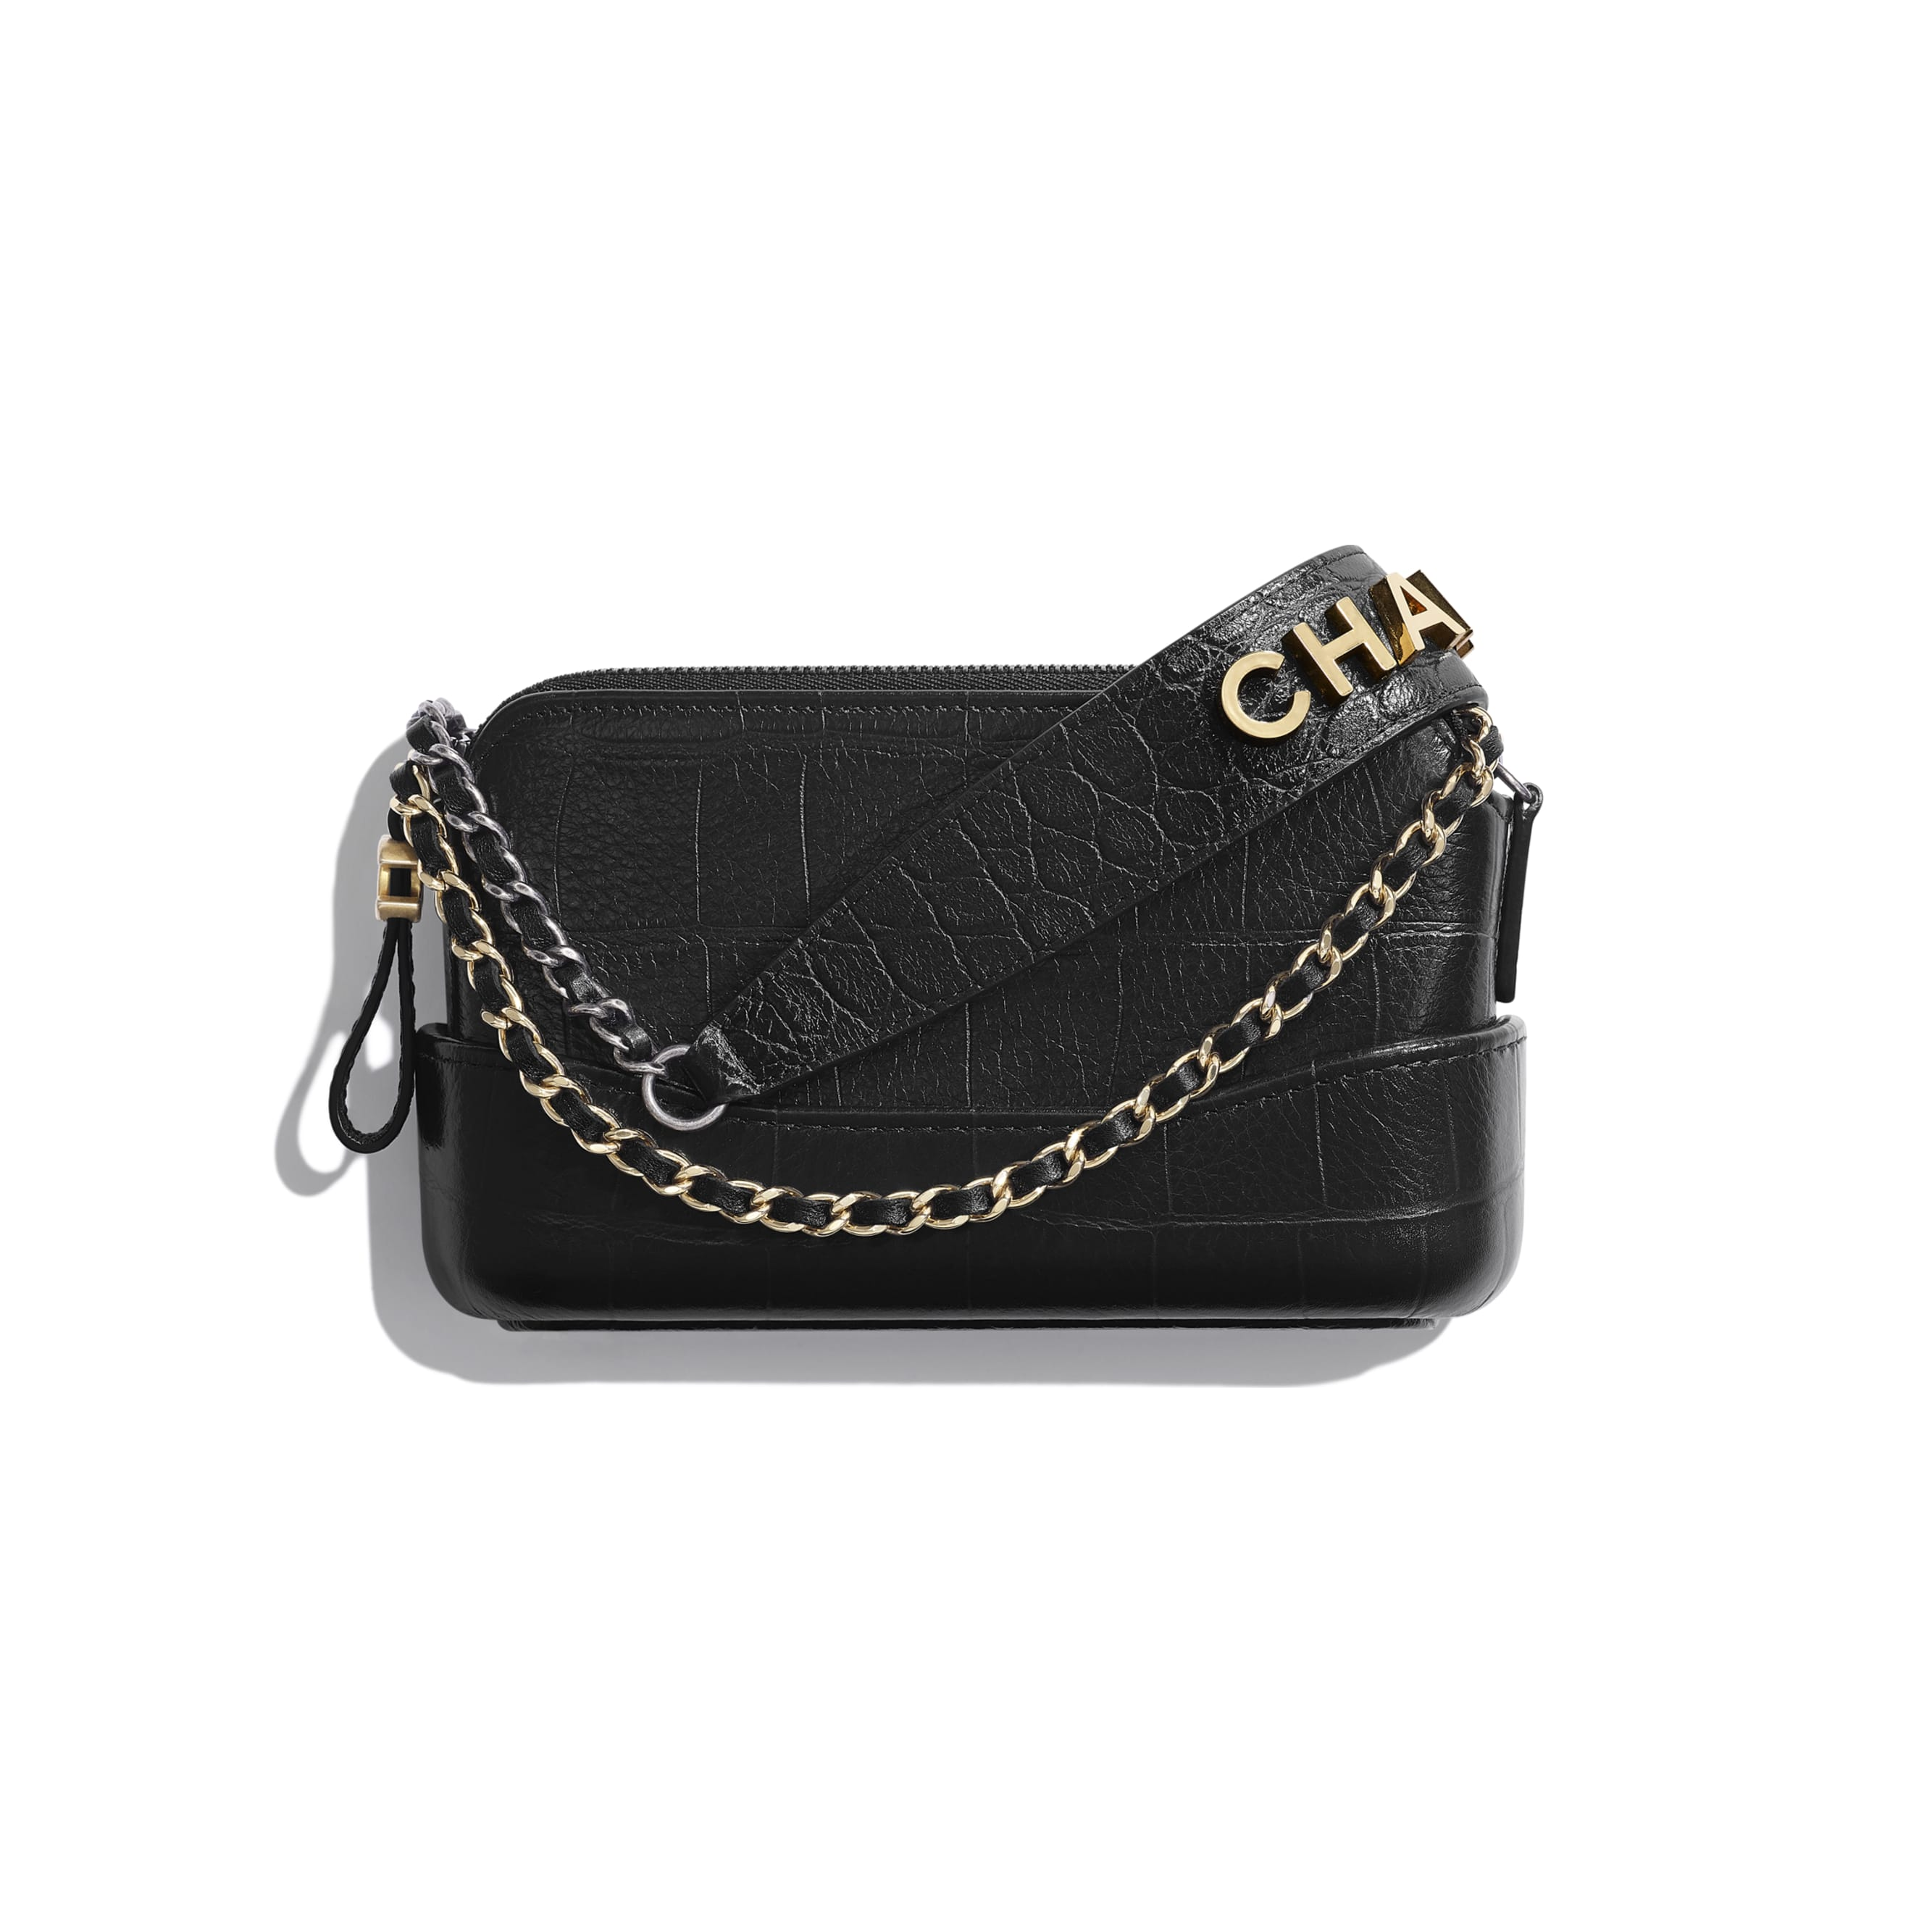 Clutch With Chain - Black - Crocodile Embossed Calfskin, Gold-Tone & Silver-Tone Metal - CHANEL - Default view - see standard sized version